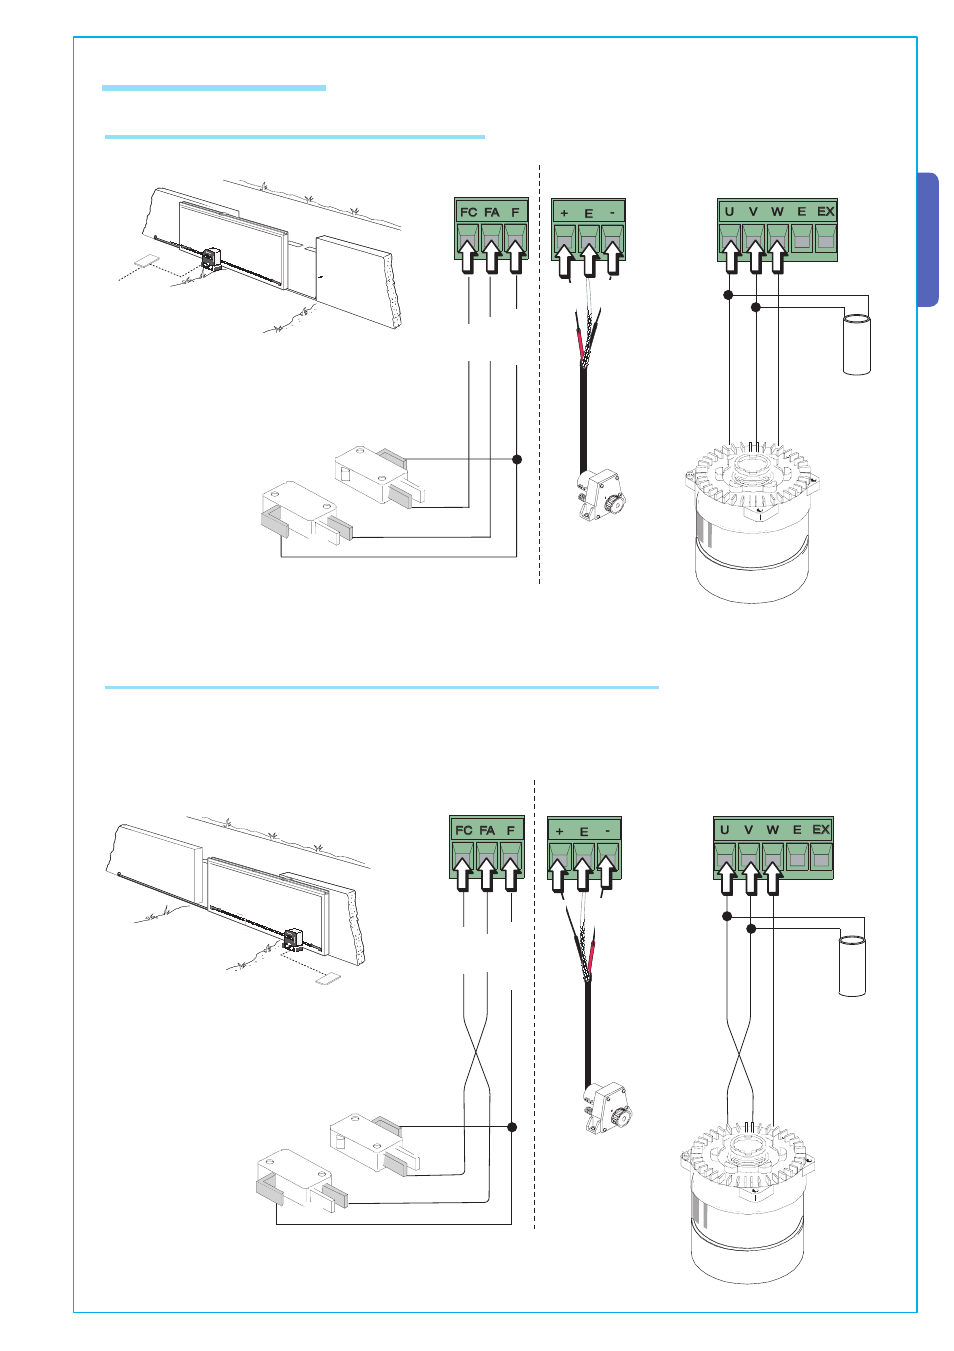 hight resolution of english 3 electrical connections connection for gear motor limit switch or encoder came bke 2200 kit user manual page 9 22